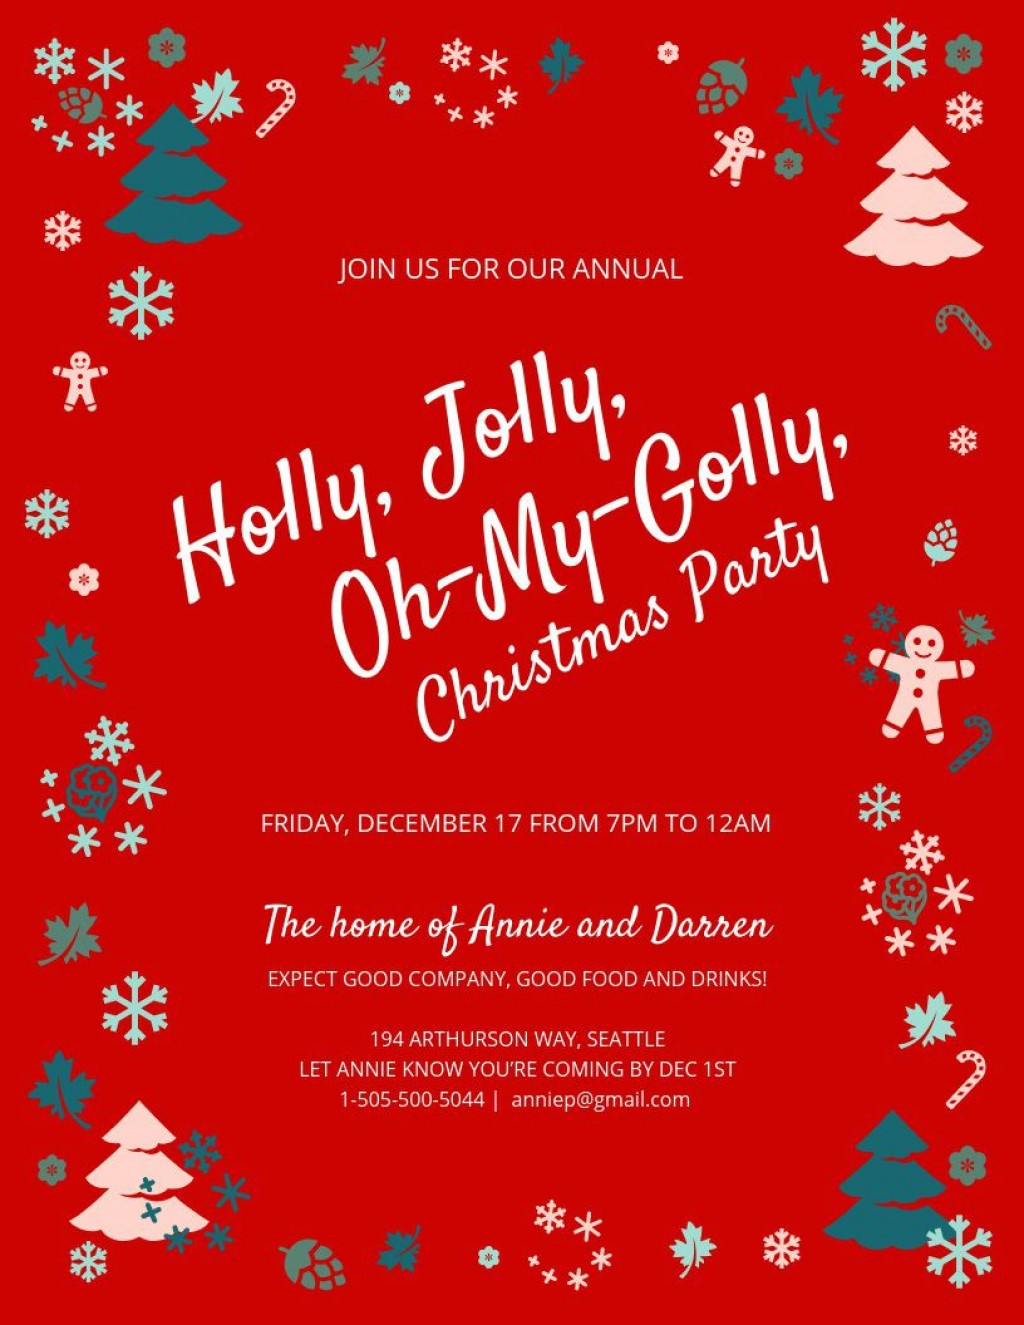 004 Outstanding Christma Party Invite Template Sample  Microsoft Word Free Download Holiday Invitation PowerpointLarge